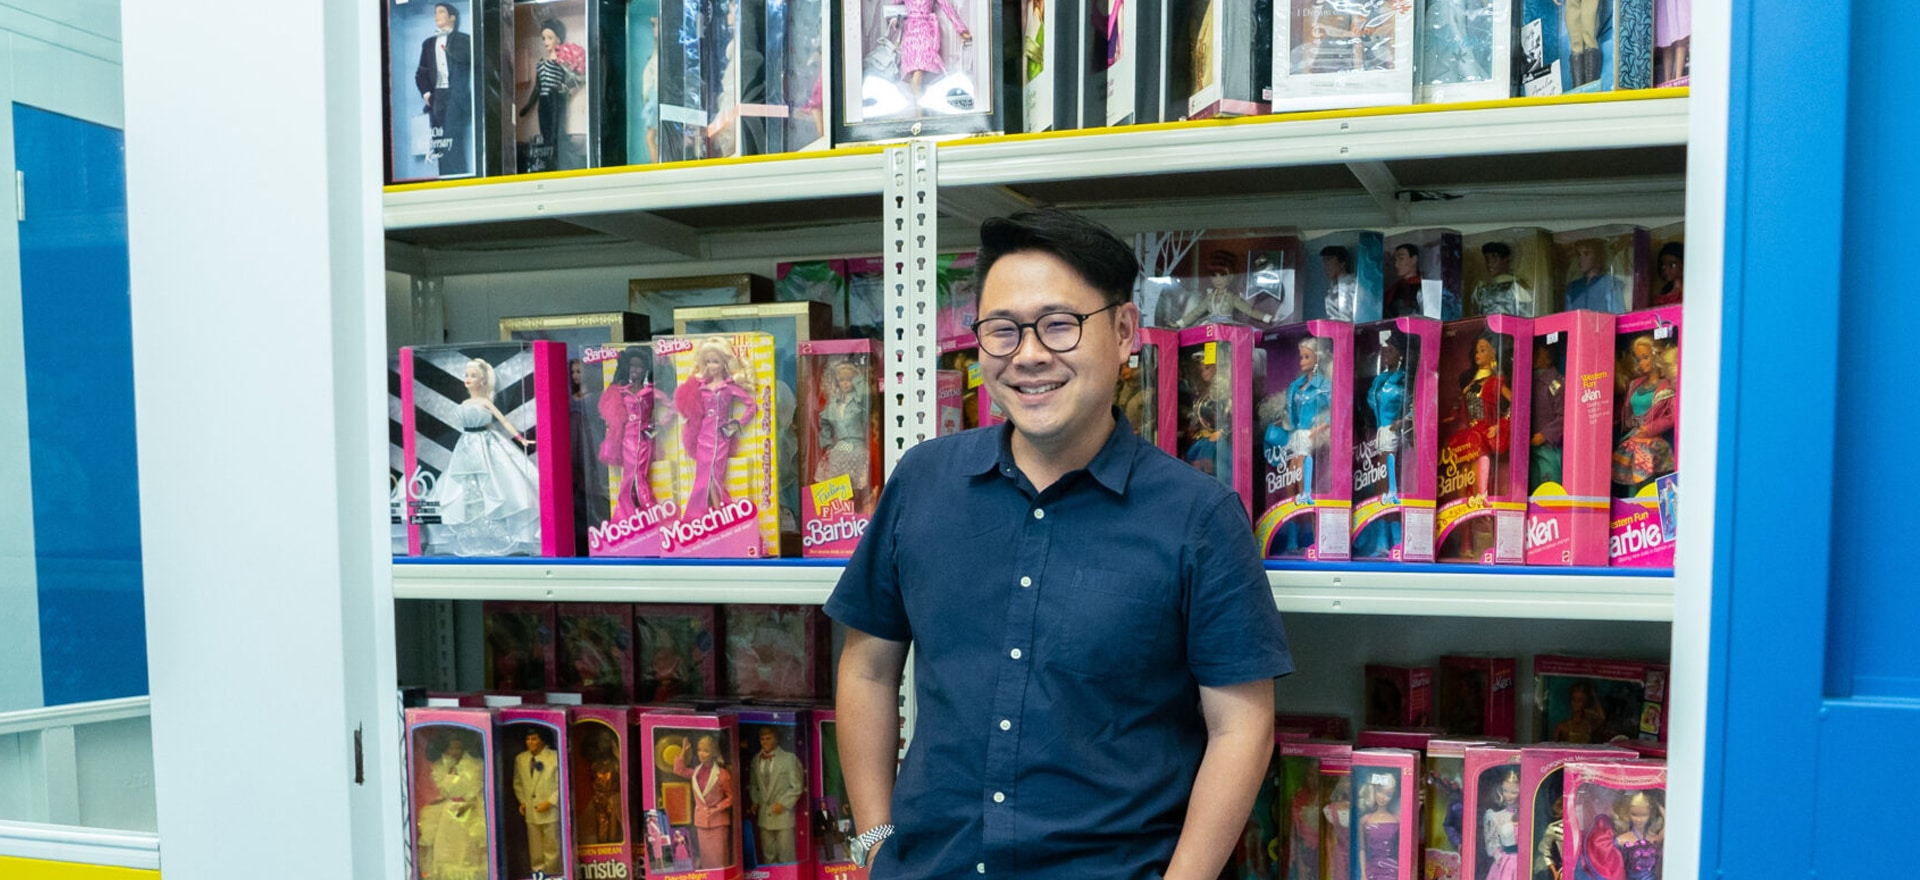 Man with Barbie collection